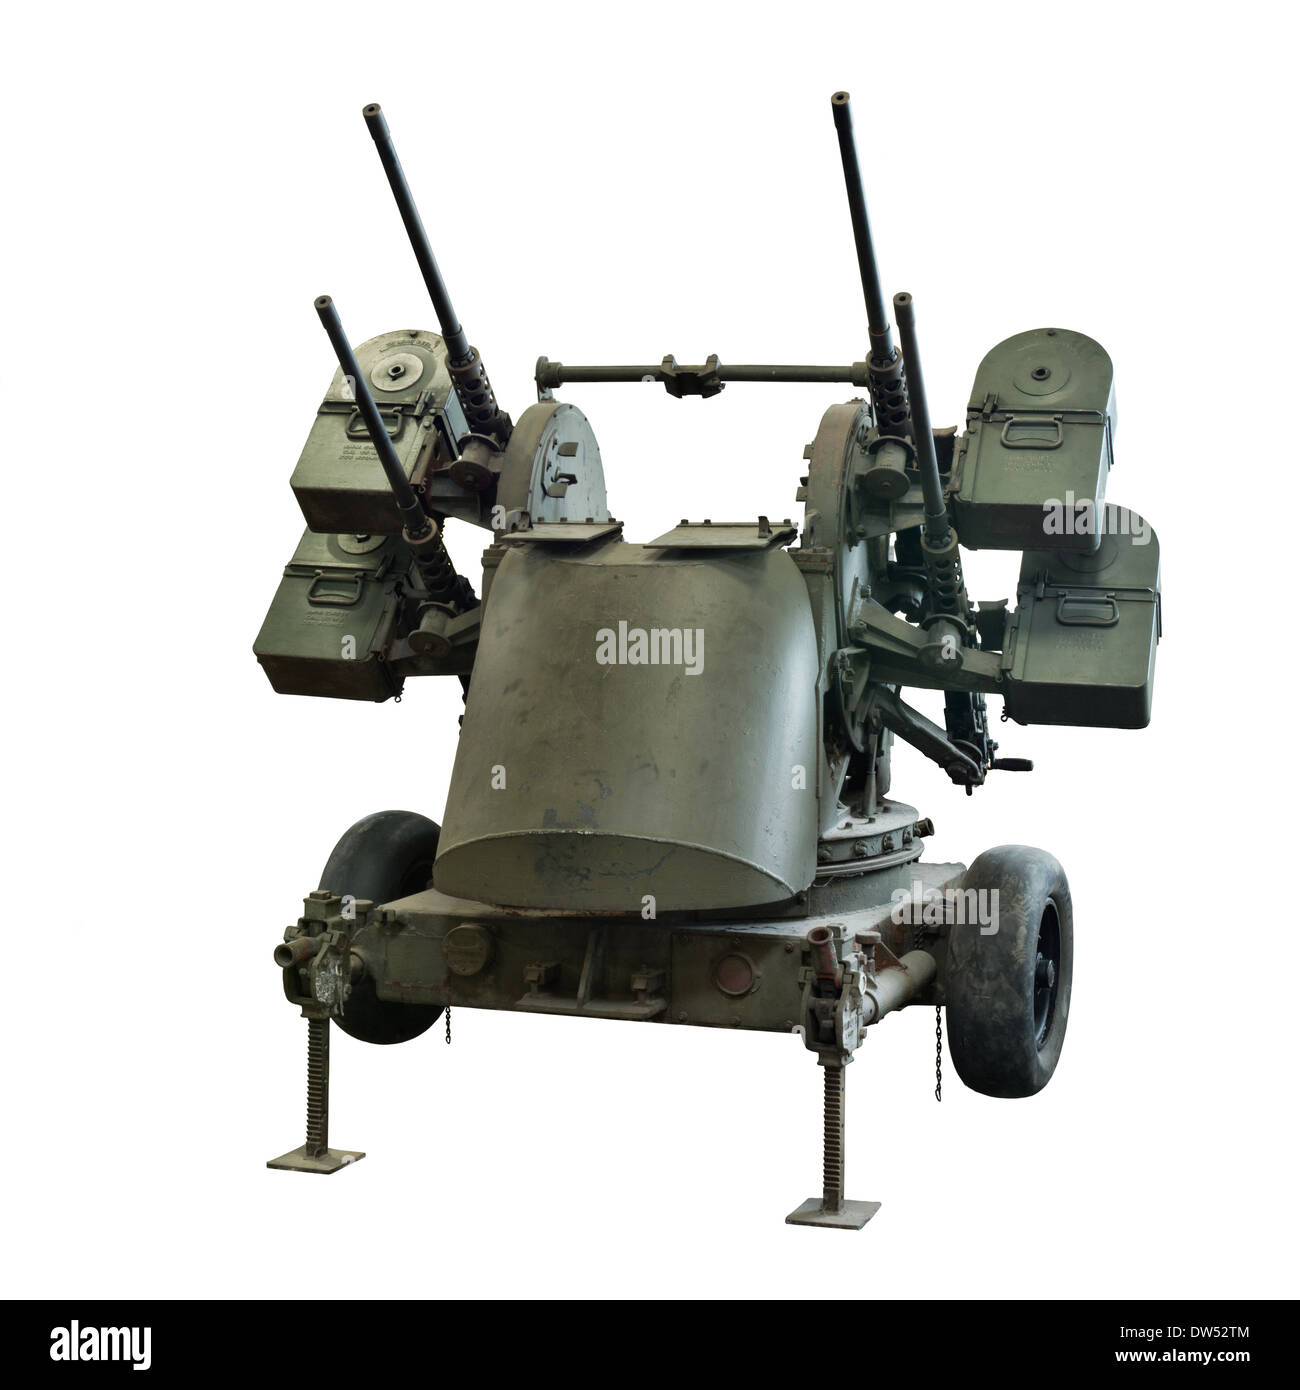 A Maxon M45 Quadmount anti-aircraft system used extensively by allied forces during WW2 - Stock Image